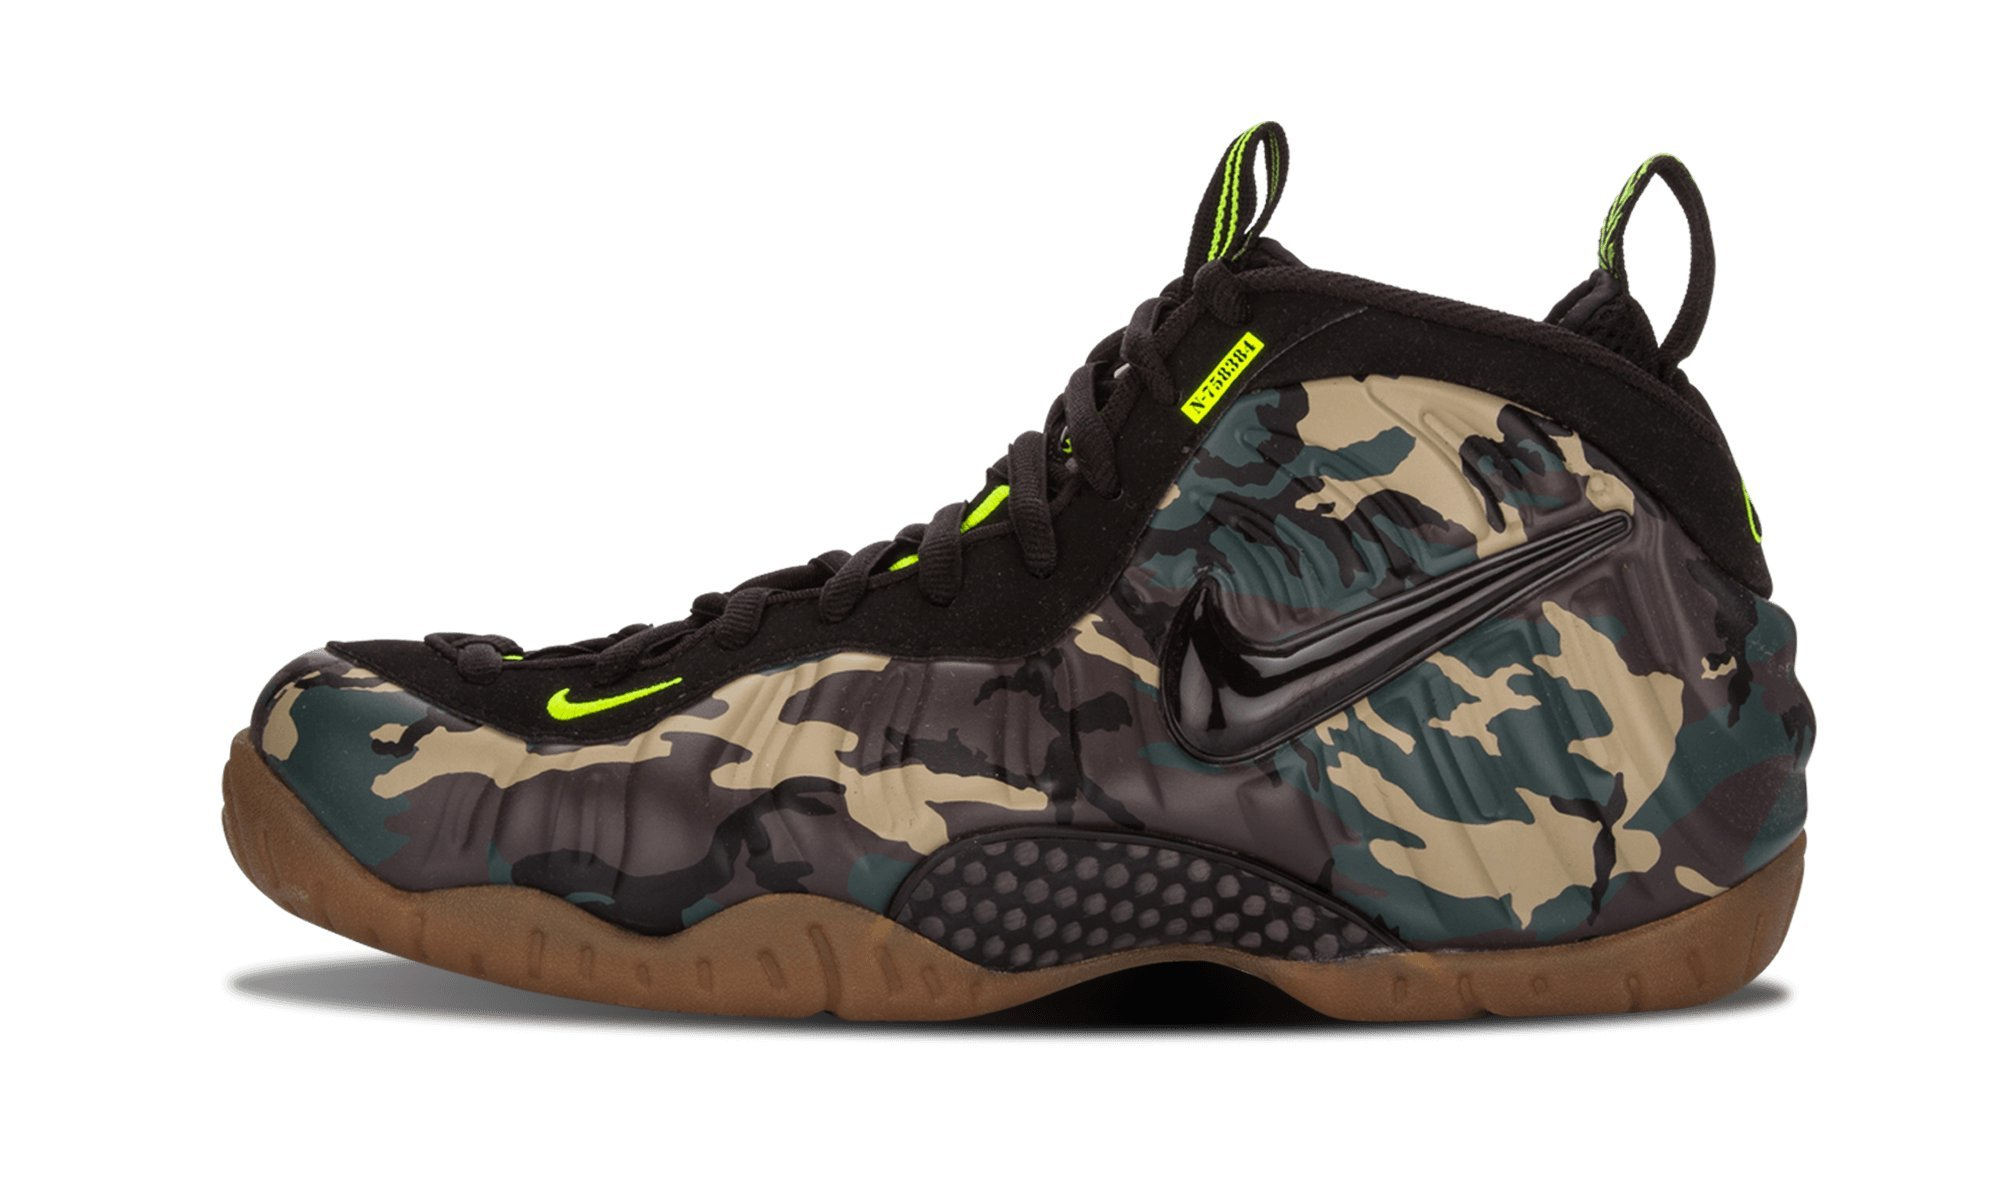 Nike Mens Air Foamposite Pro PRM LE Army Camo Synthetic Basketball Shoes